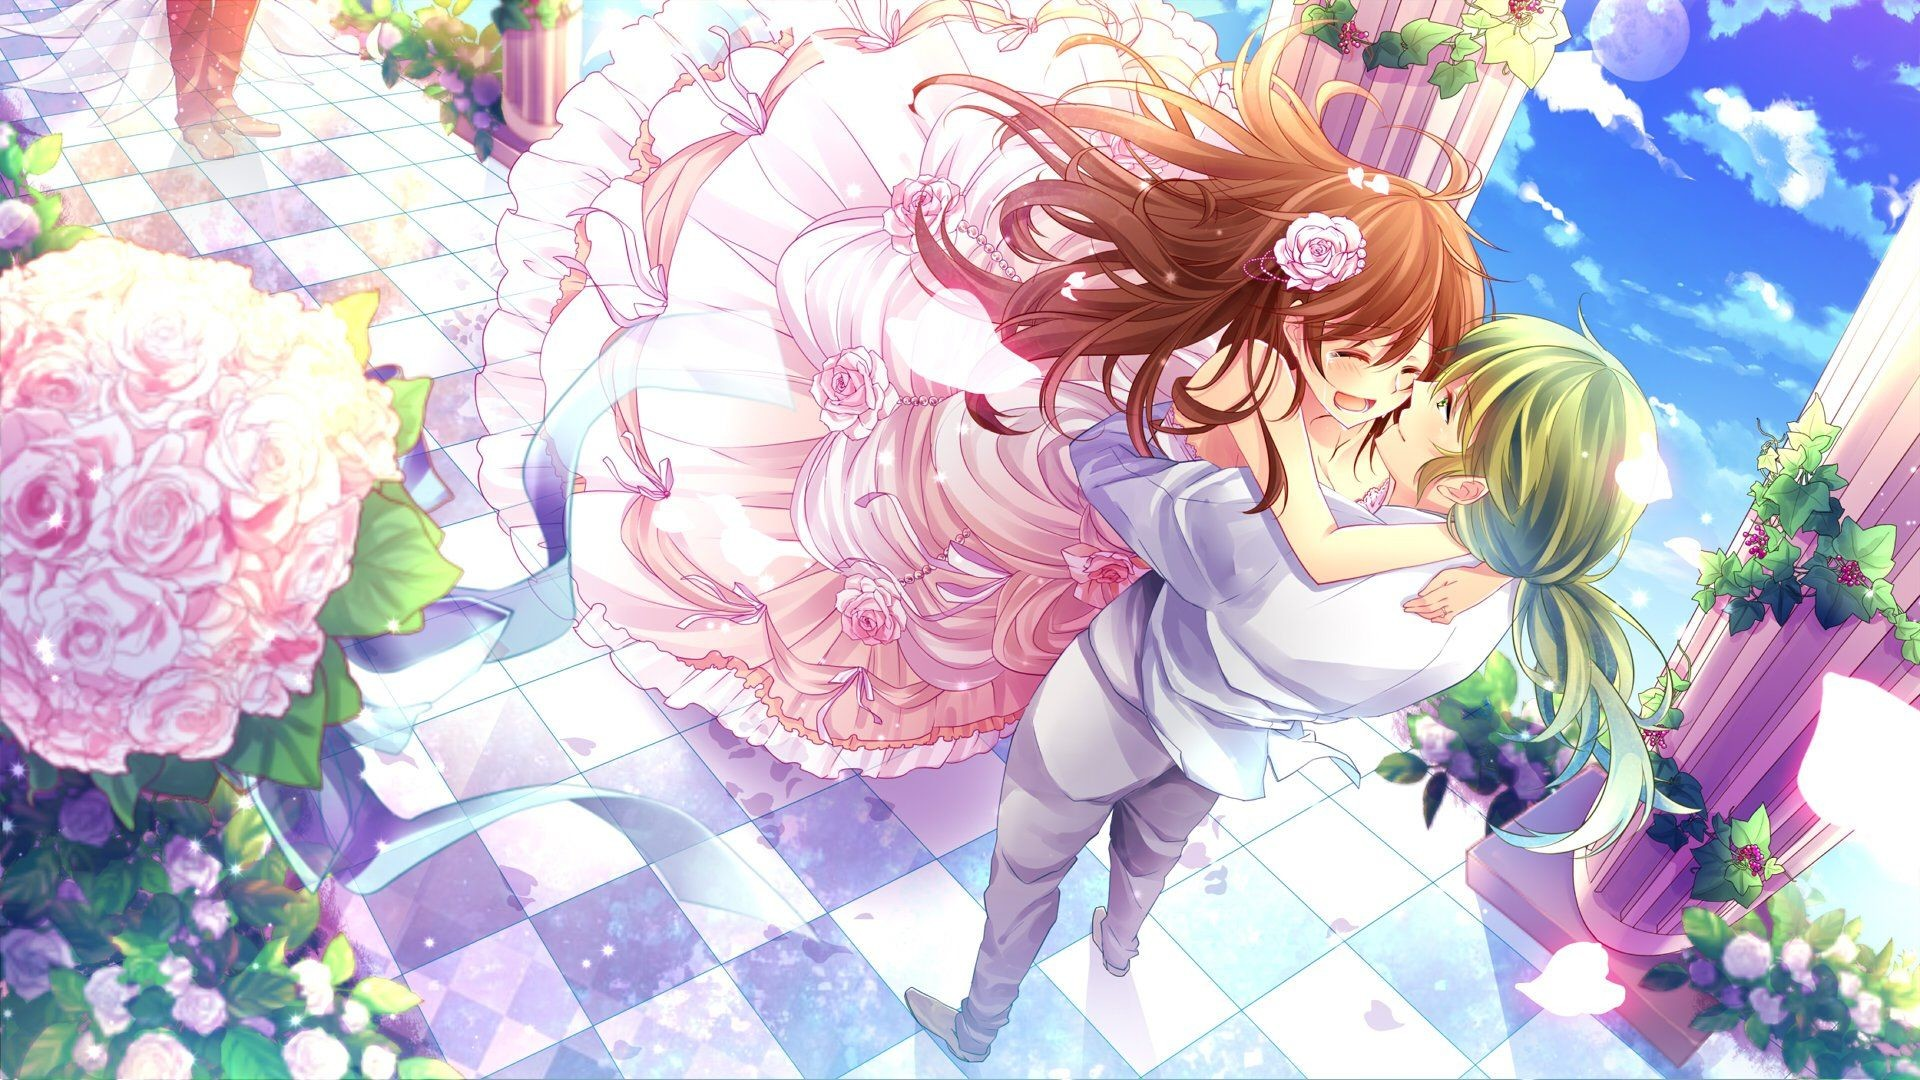 Res: 1920x1080, Anime couple wallpaper Gallery| Beautiful and Interesting  Images,Vectors,Coloring,Cliparts |Free Hd wallpapers